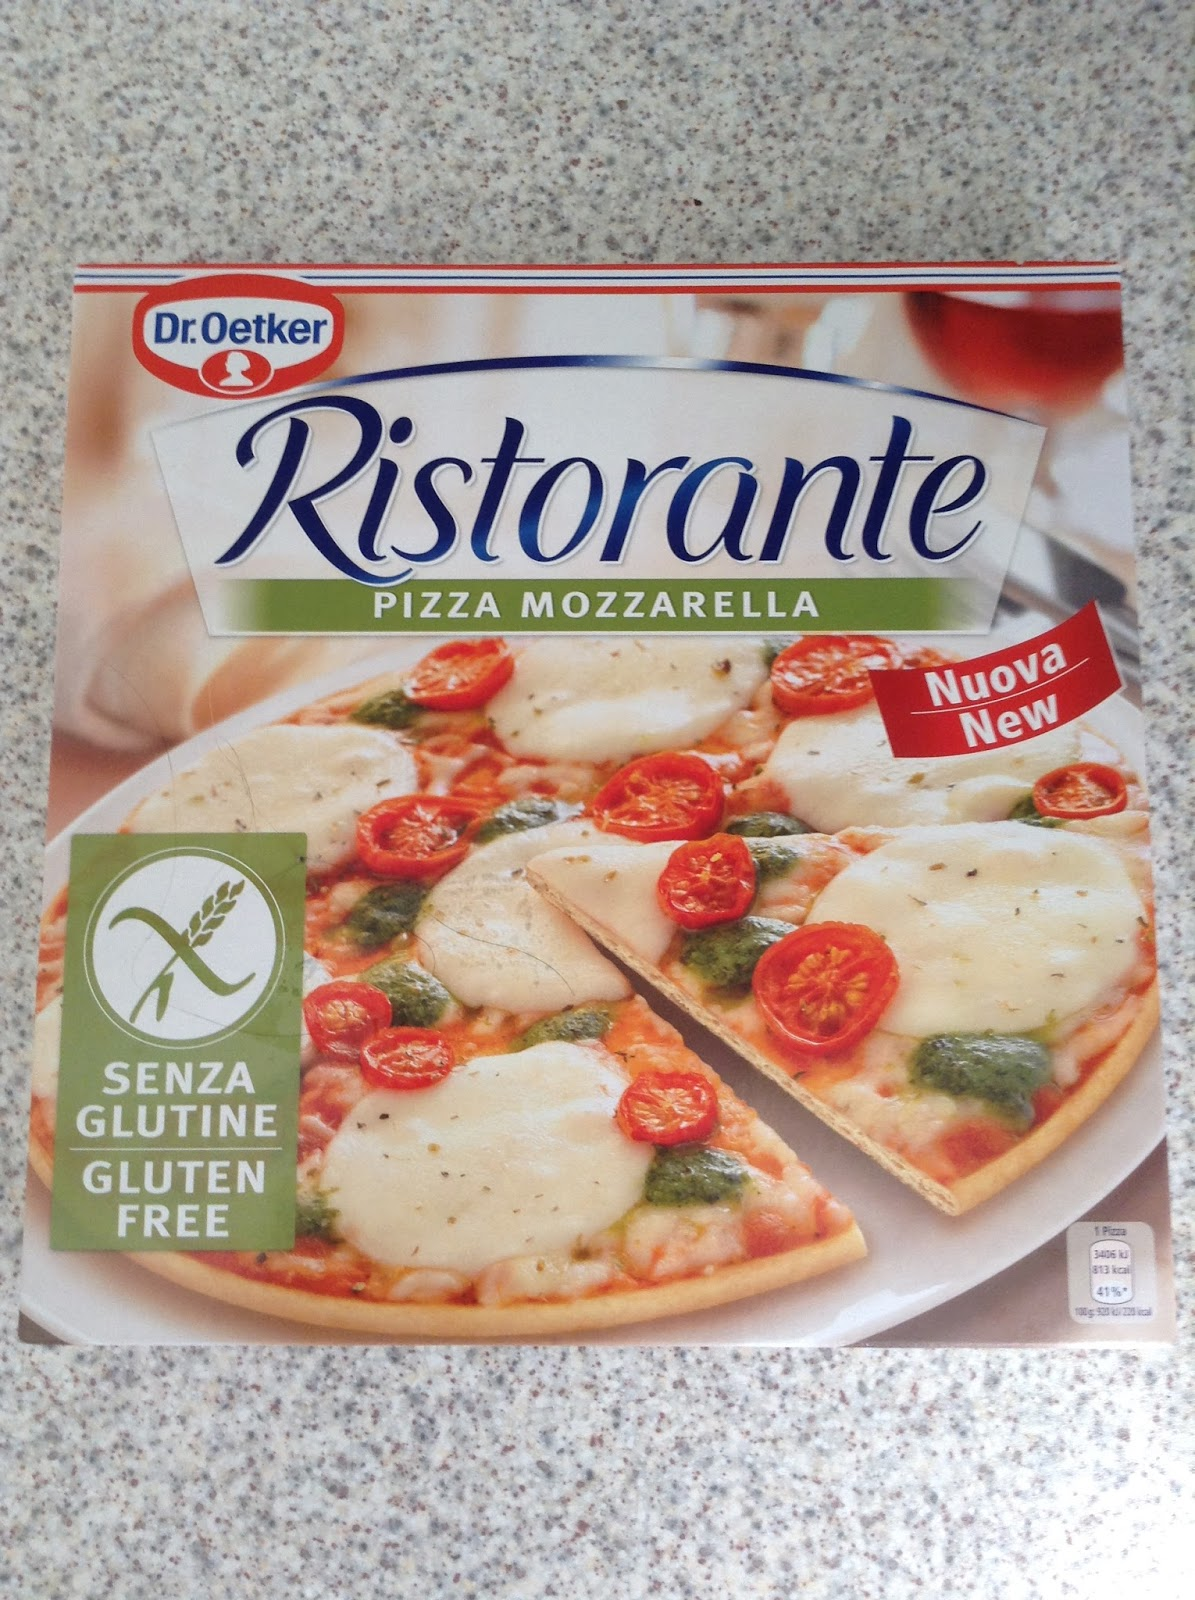 dr oetker gluten free ristorante pizza mozzarella. Black Bedroom Furniture Sets. Home Design Ideas